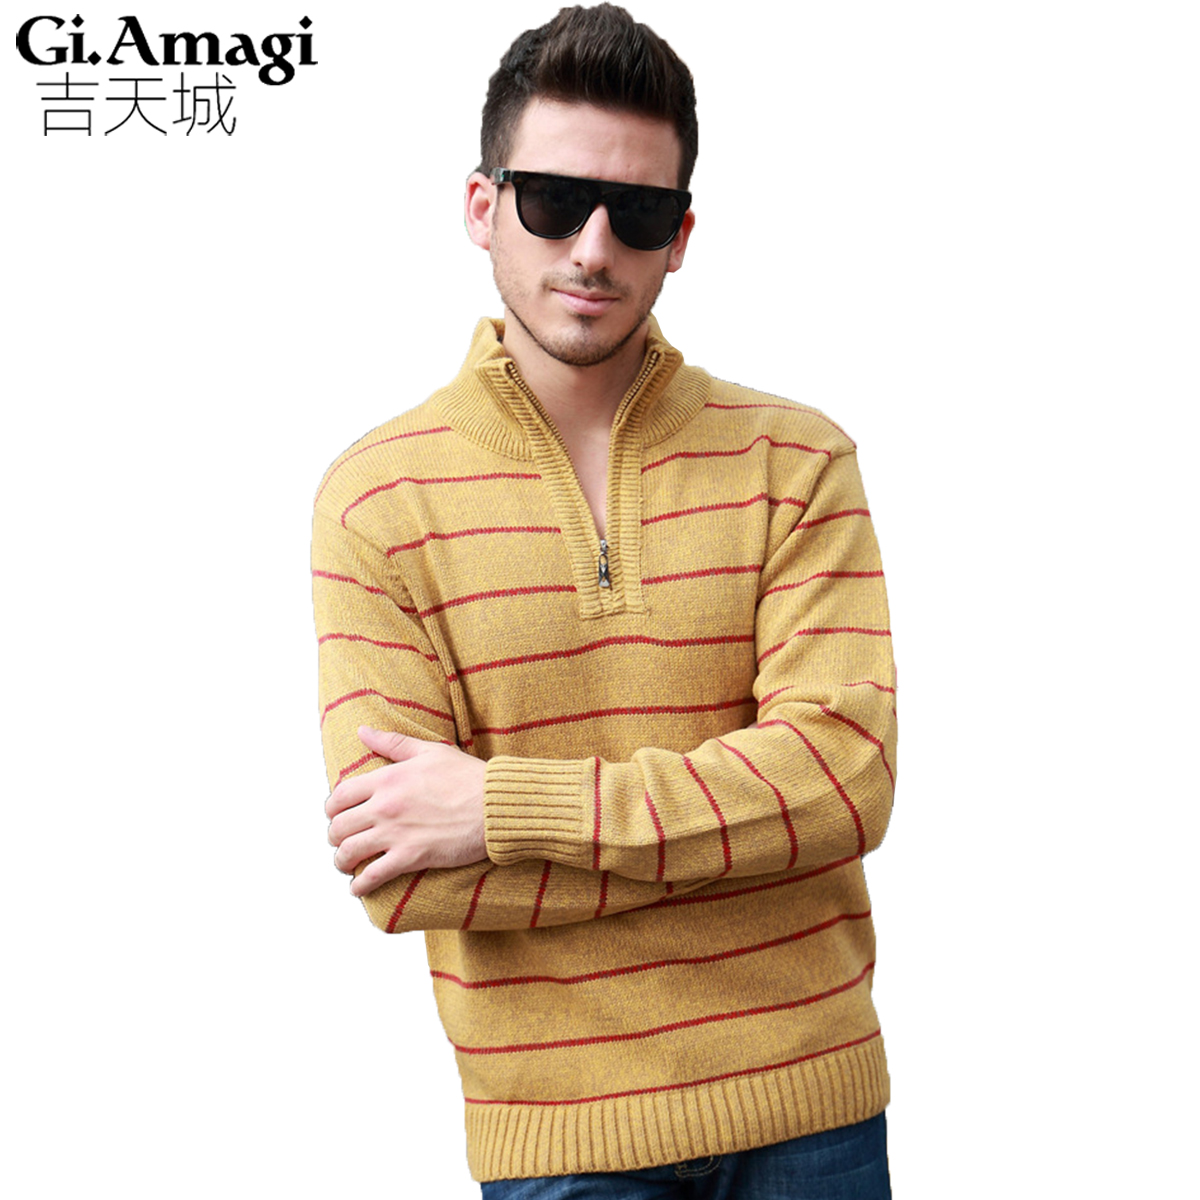 Sweater Men Winter Thicking 2017 Full Length Turtleneck Striped Mens  Sweater Pullovers-in Pullovers from Men s Clothing   Accessories on  Aliexpress.com ... 787a74aad0